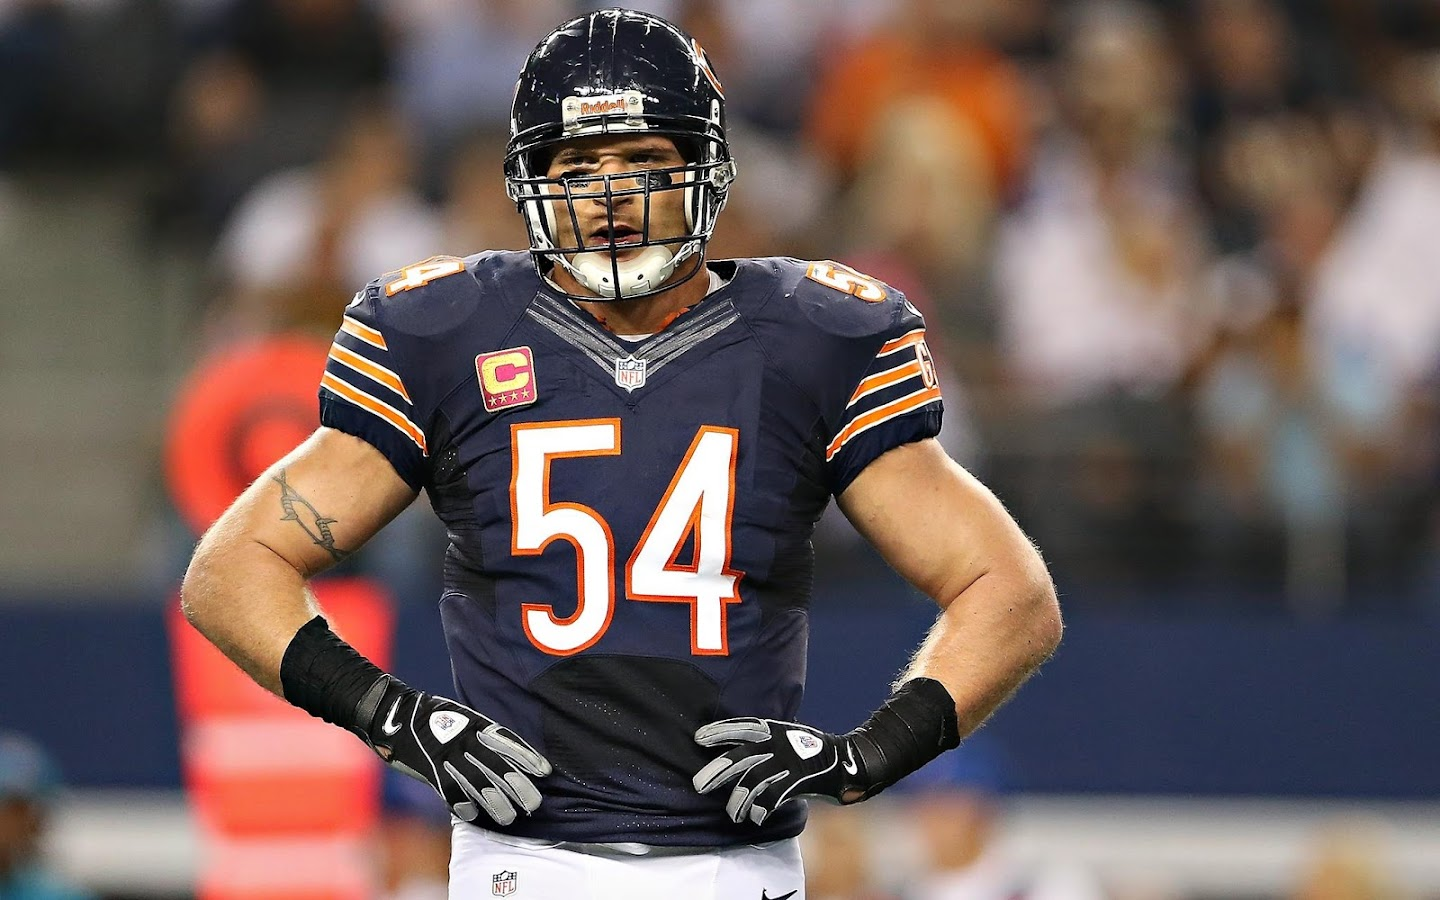 Brian Urlacher Wallpaper Free - Android Apps on Google Play